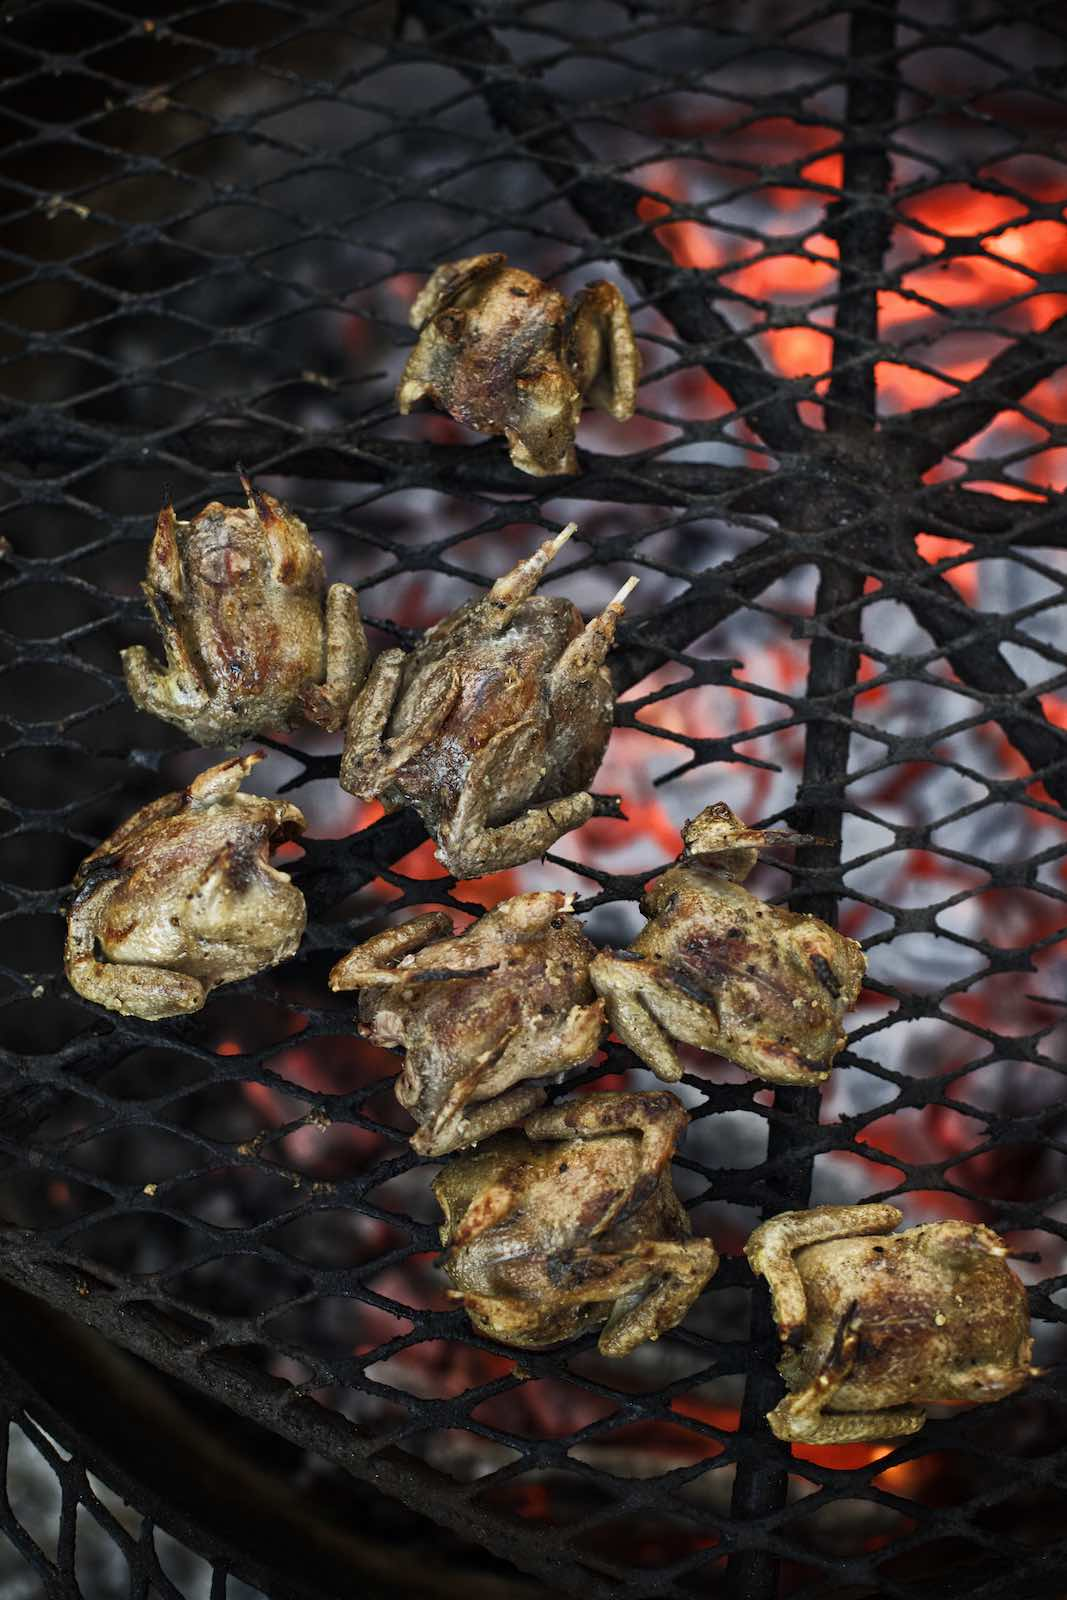 Jody Horton Photography - Grilled doves.